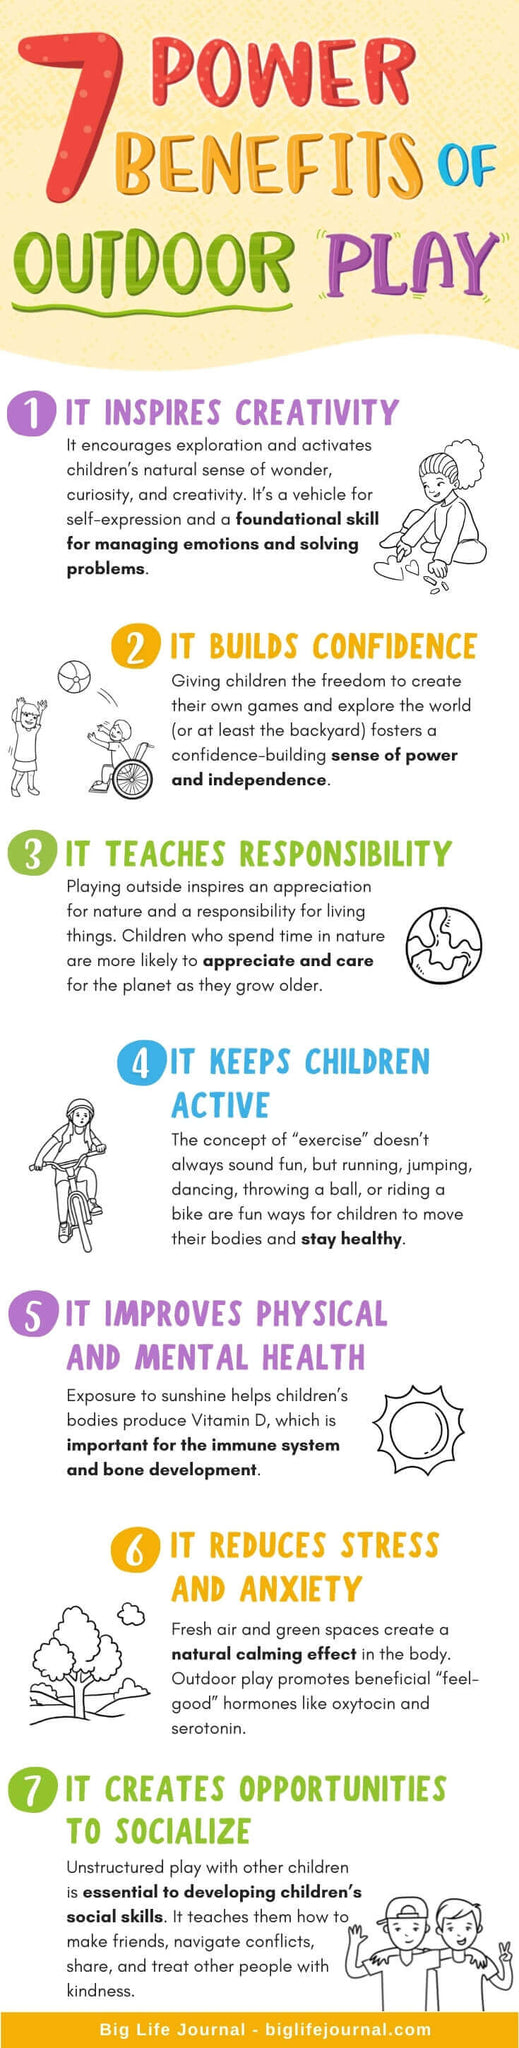 7 Benefits to Outdoor Play